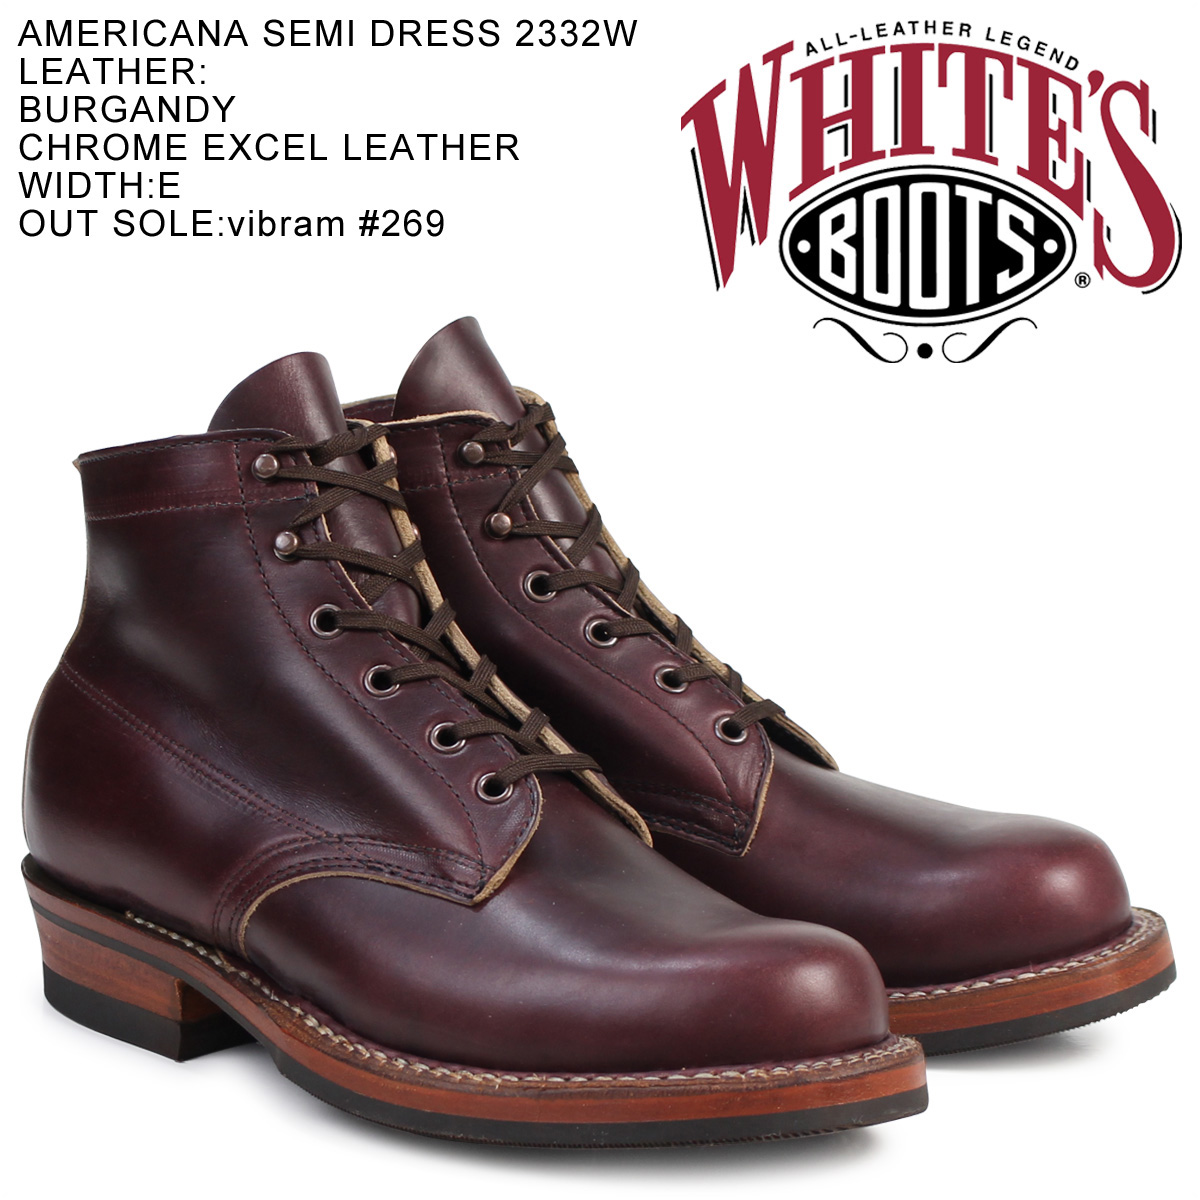 «Reservation products» «around the 10 / 23 stock» whites boots WHITE's BOOTS 5 inch Americana semi boots 2332 W 5inch AMERICANA SEMIDRESS BOOTS E wise BURGUNDY CHROME EXCEL mens